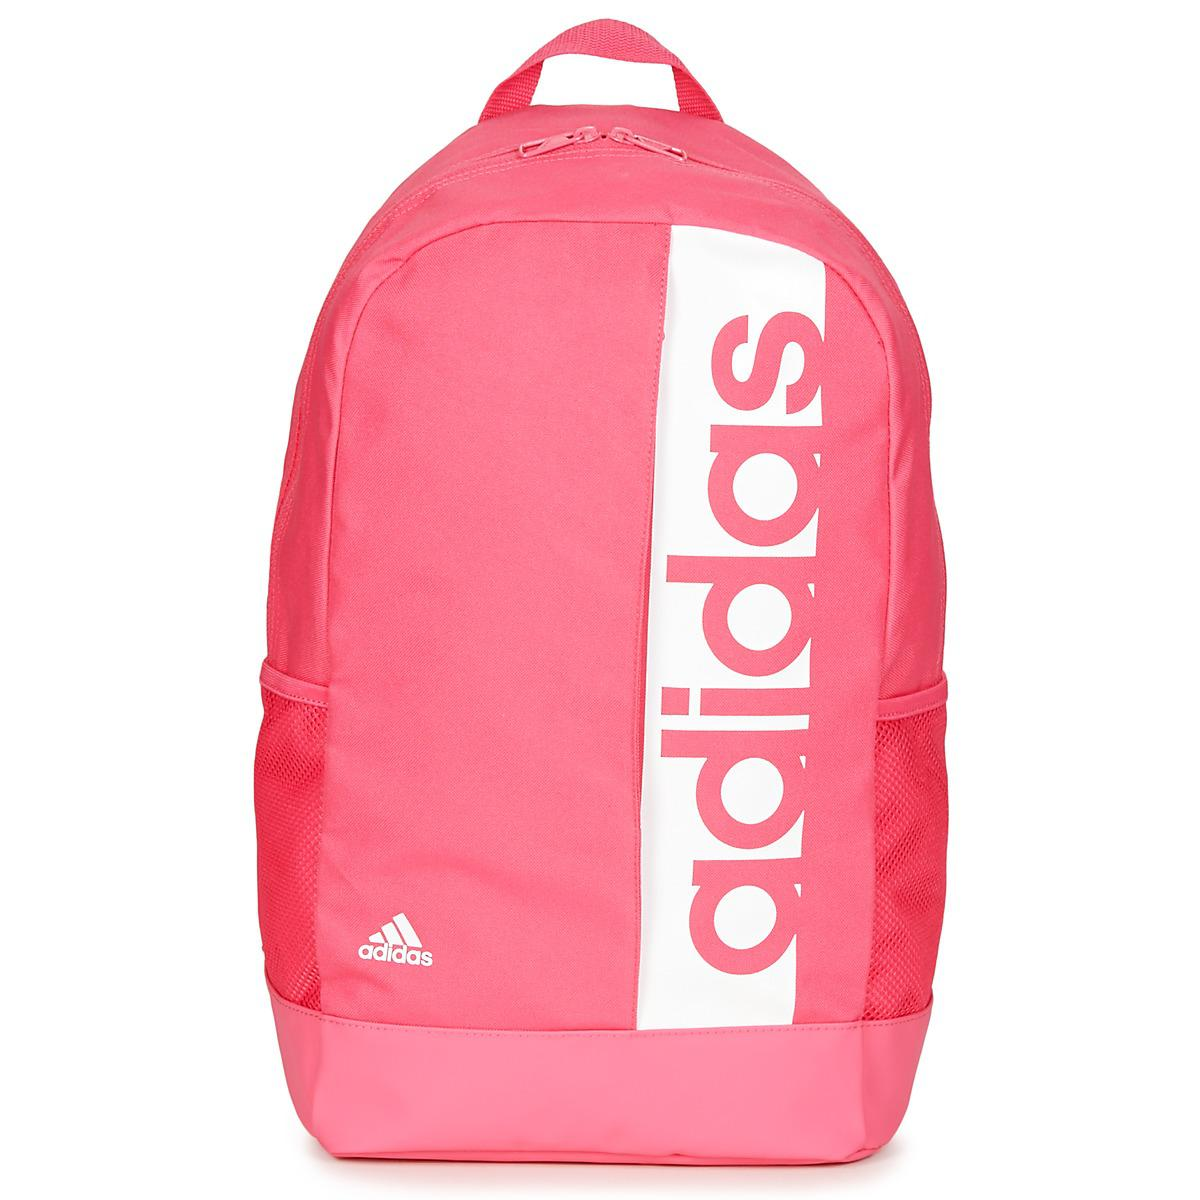 adidas Lin Per Bp Backpack in Pink for Men - Lyst 6330531cd03f4